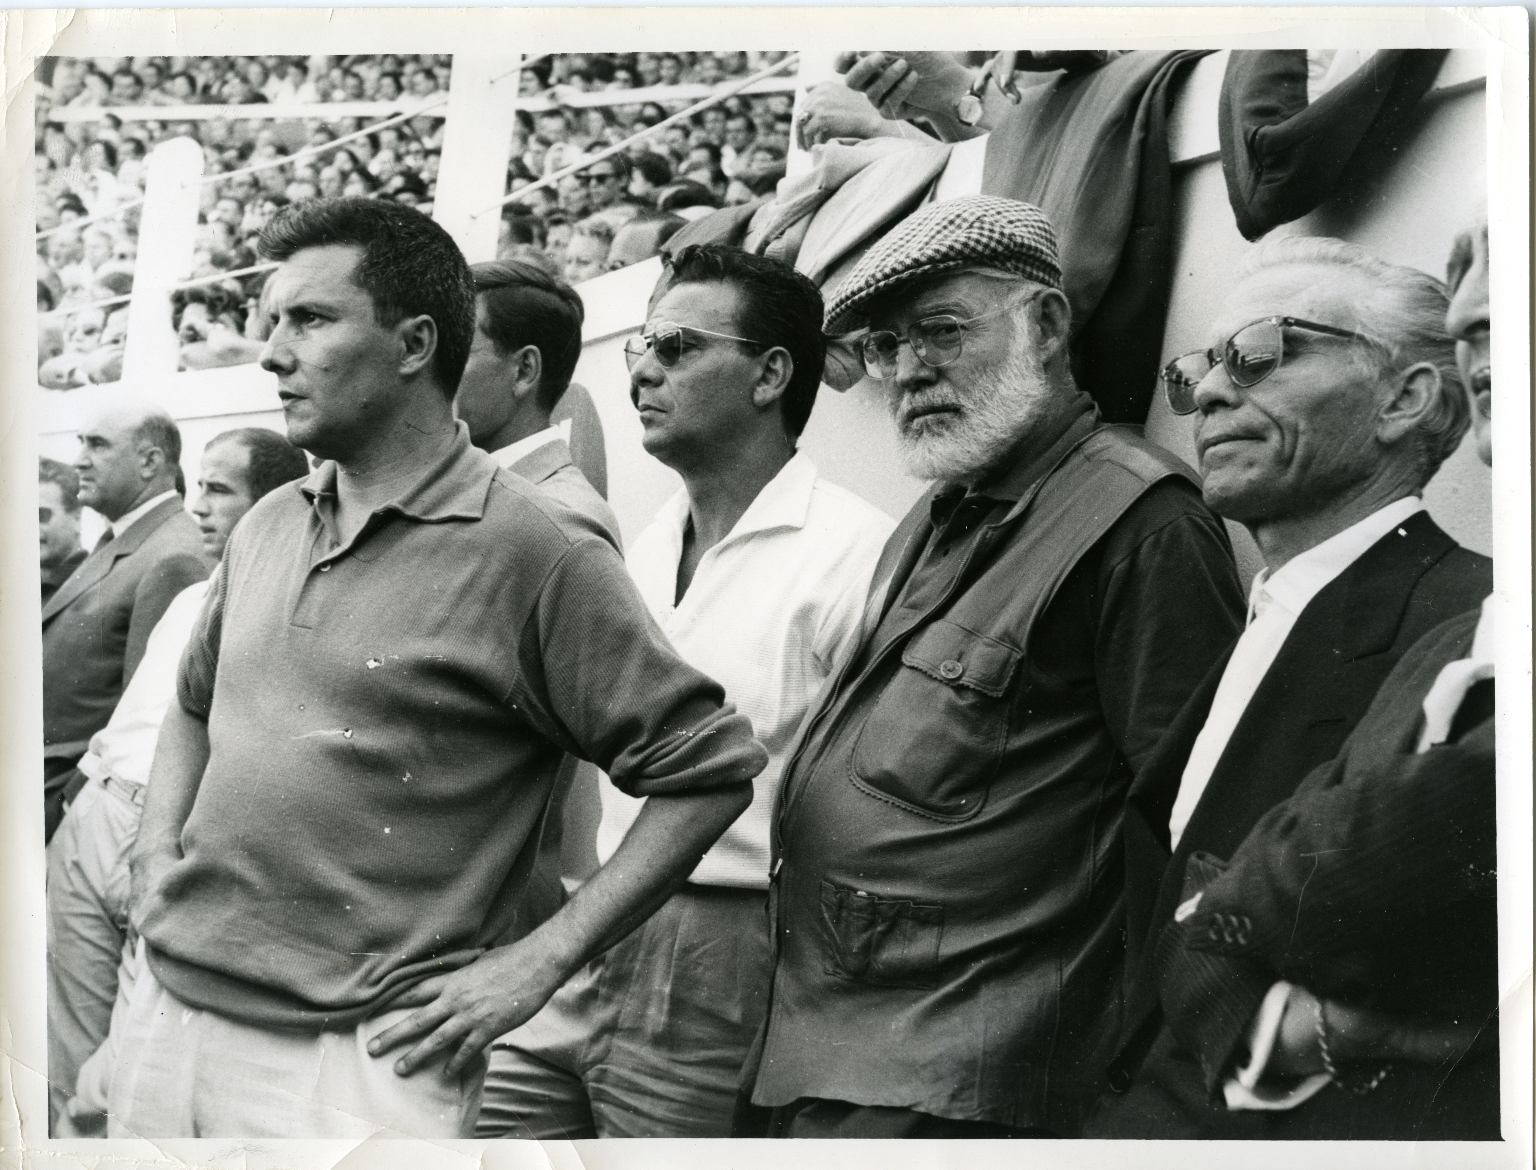 Hemingway in Jacket and Checkered Cap at Bullfight